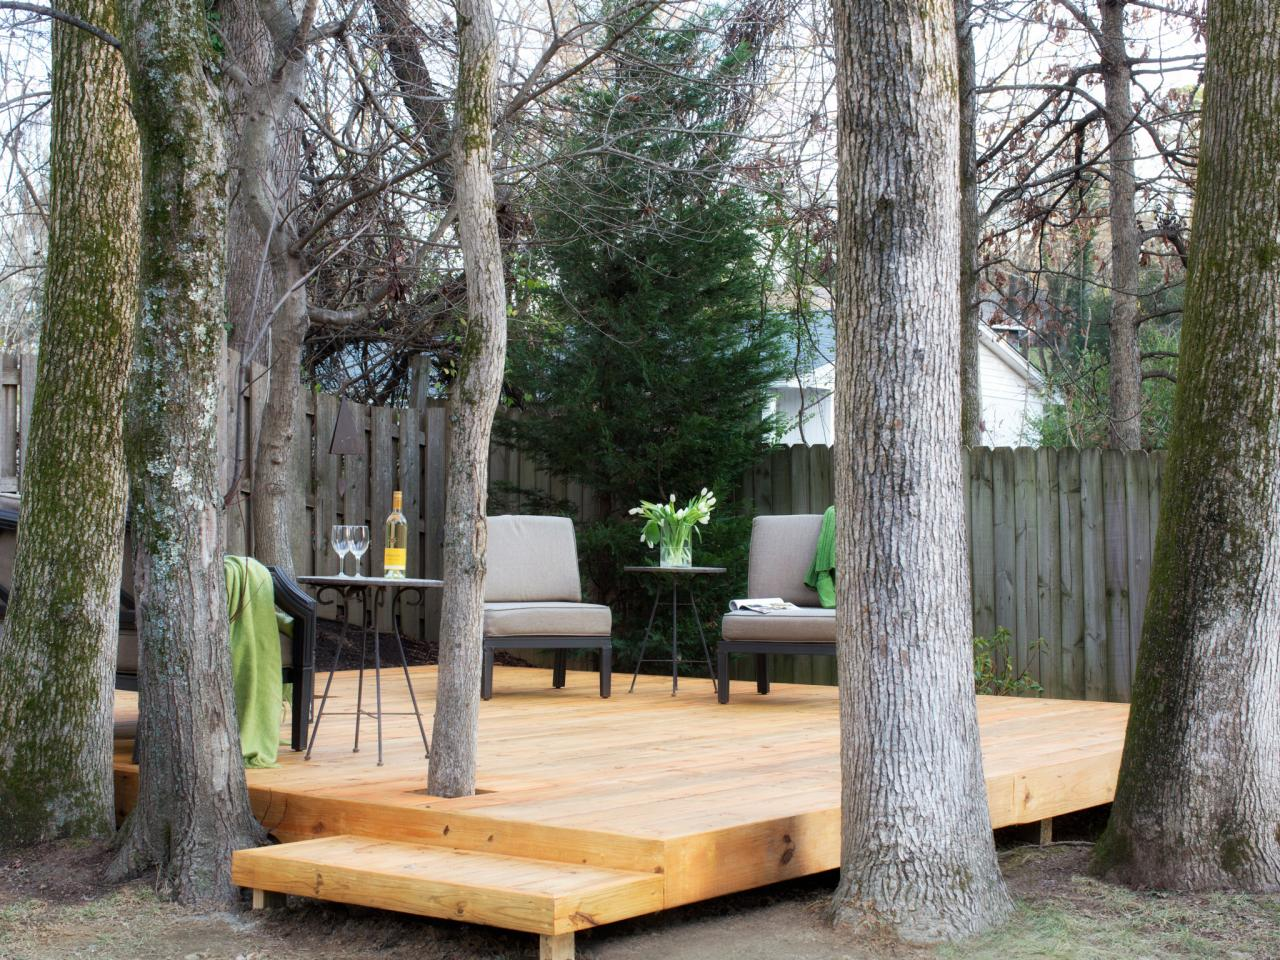 How to build a tree encompassing deck hgtv for Around the tree